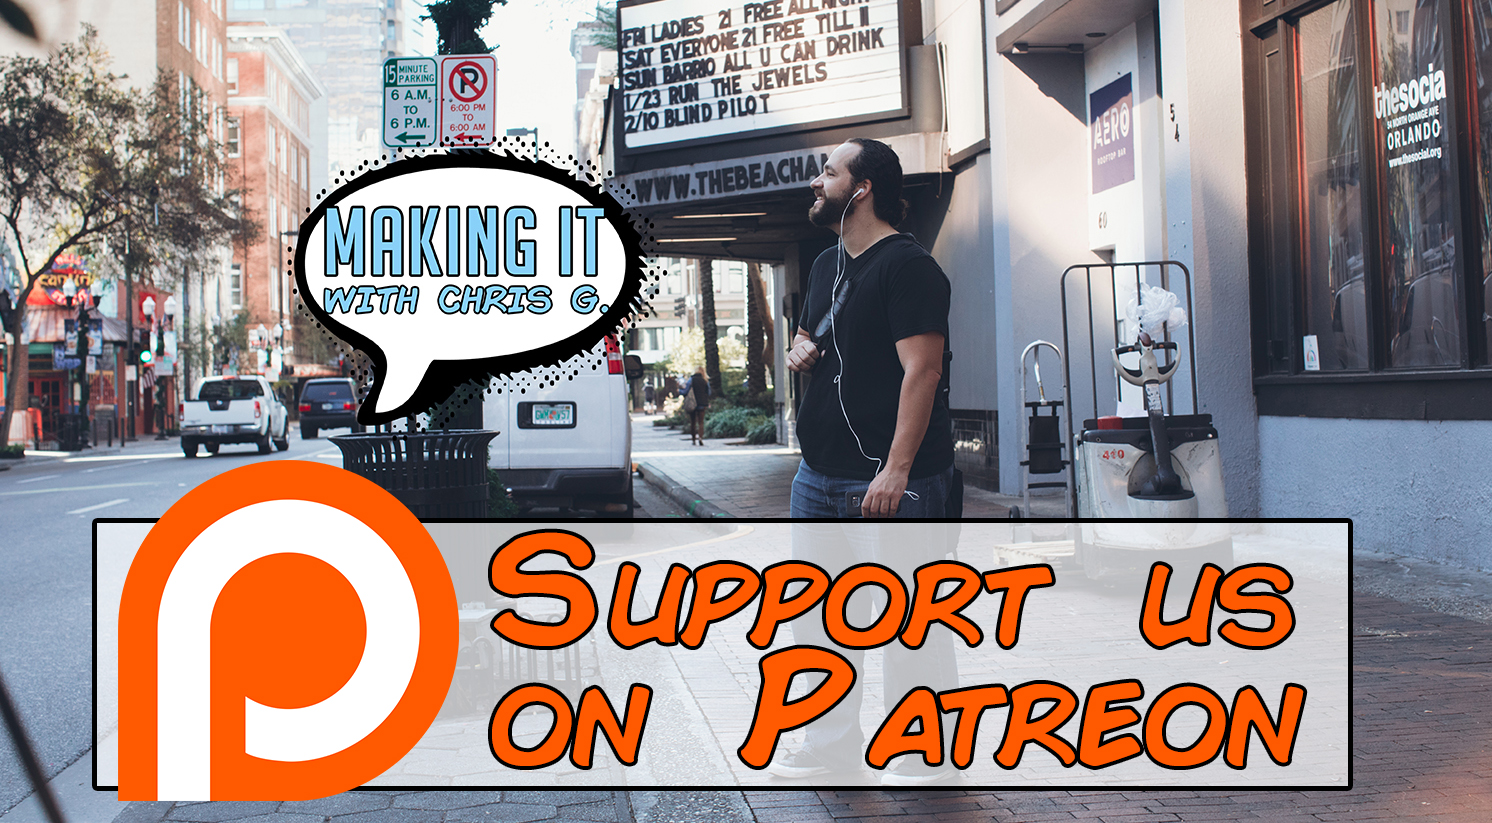 Support the Show for as little as $1 per Month - check out the video to learn about the inspiration